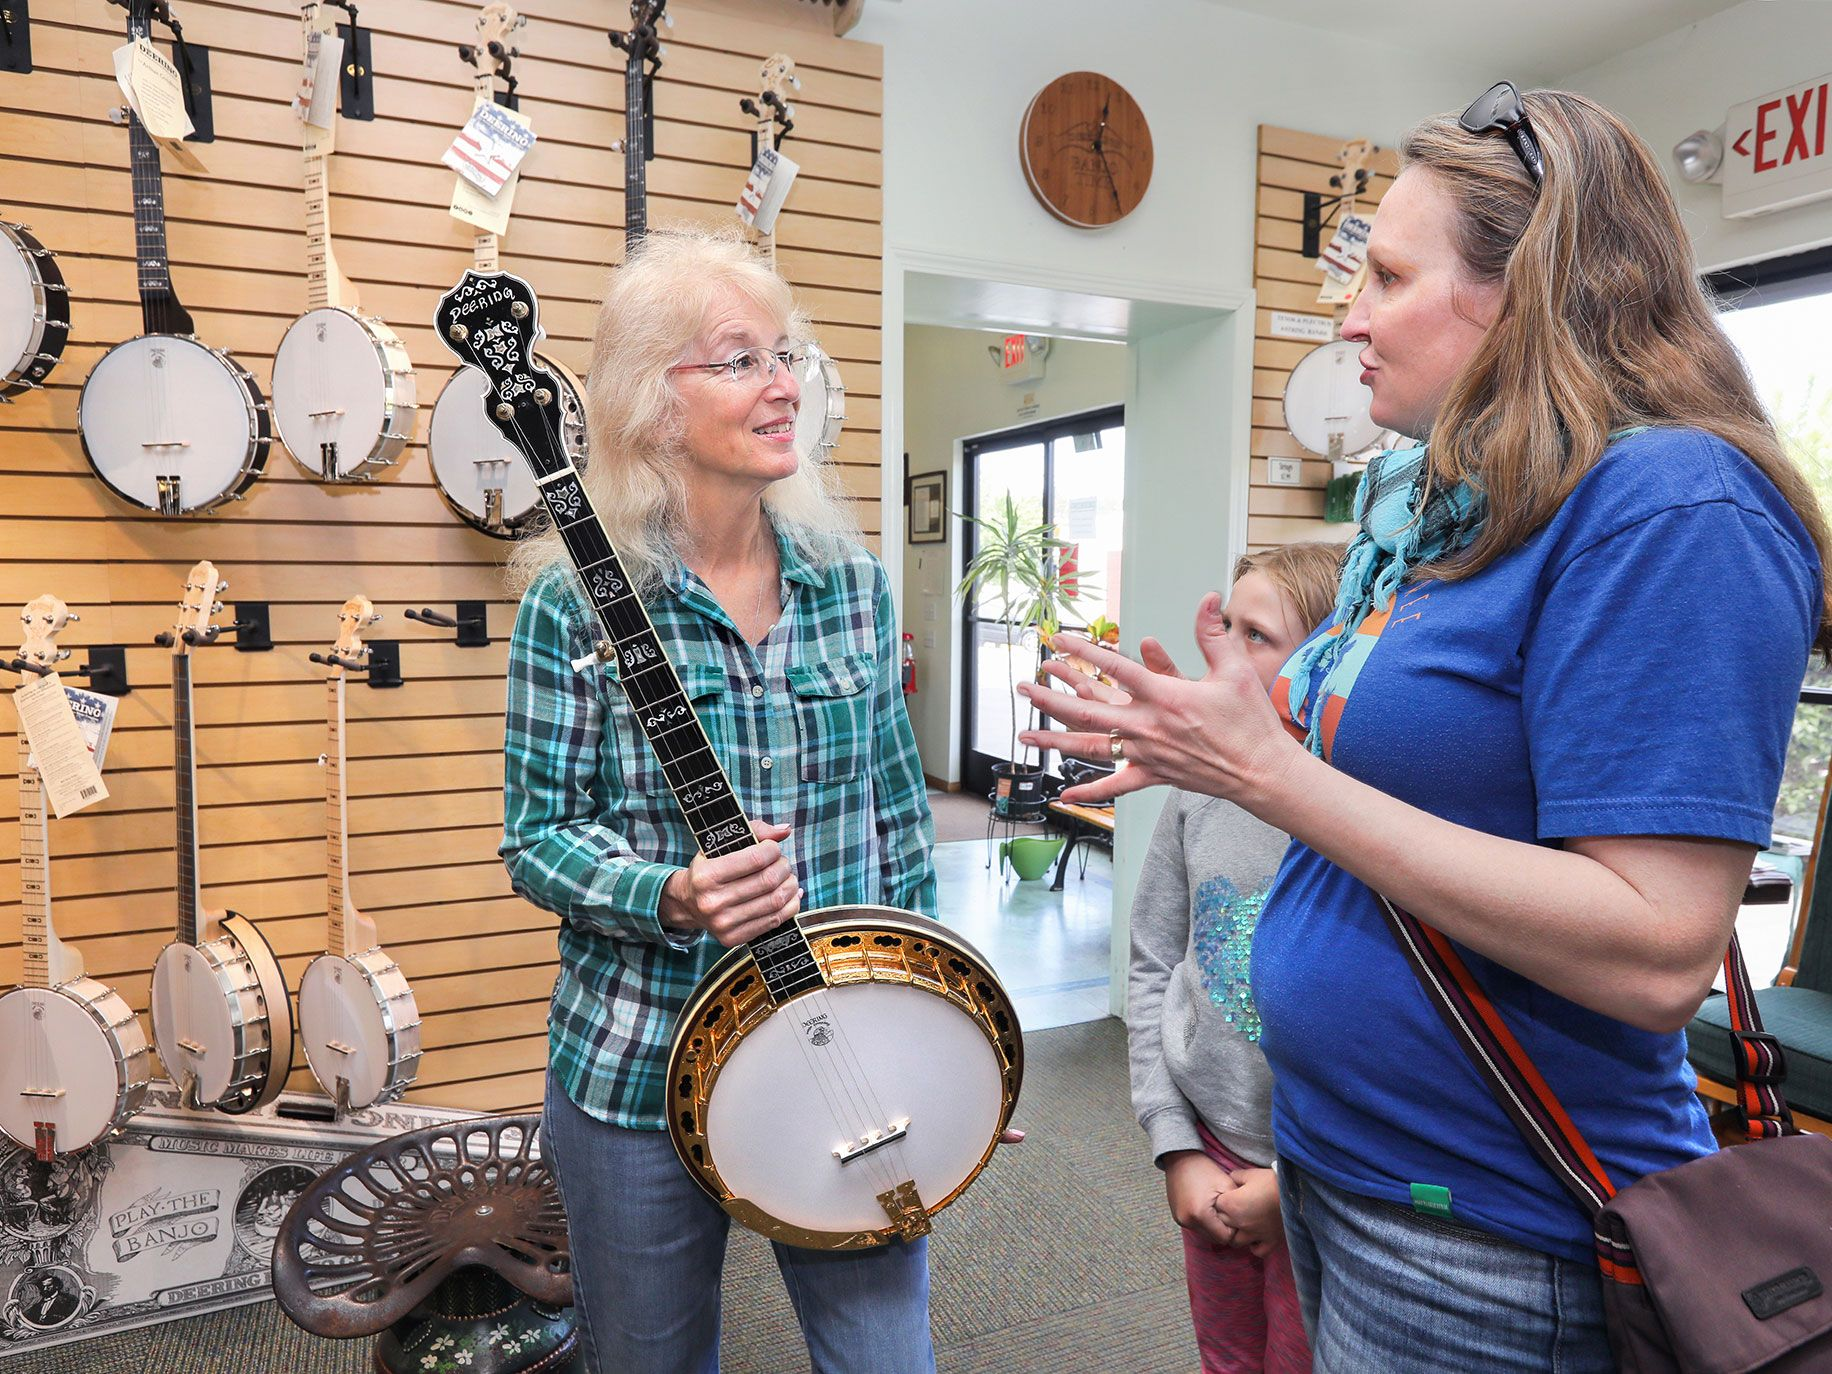 In the display room at the Deering Banjo Company Janet Deering speaks to visitors Jennifer Allison and daughter Aislyn, 8. They and other family members there are from Tucson, Arizona and are about to take a tour of the facility. Janet is holding an Ivanhoe Gold model. At left are the company's Goodtime line of banjos.